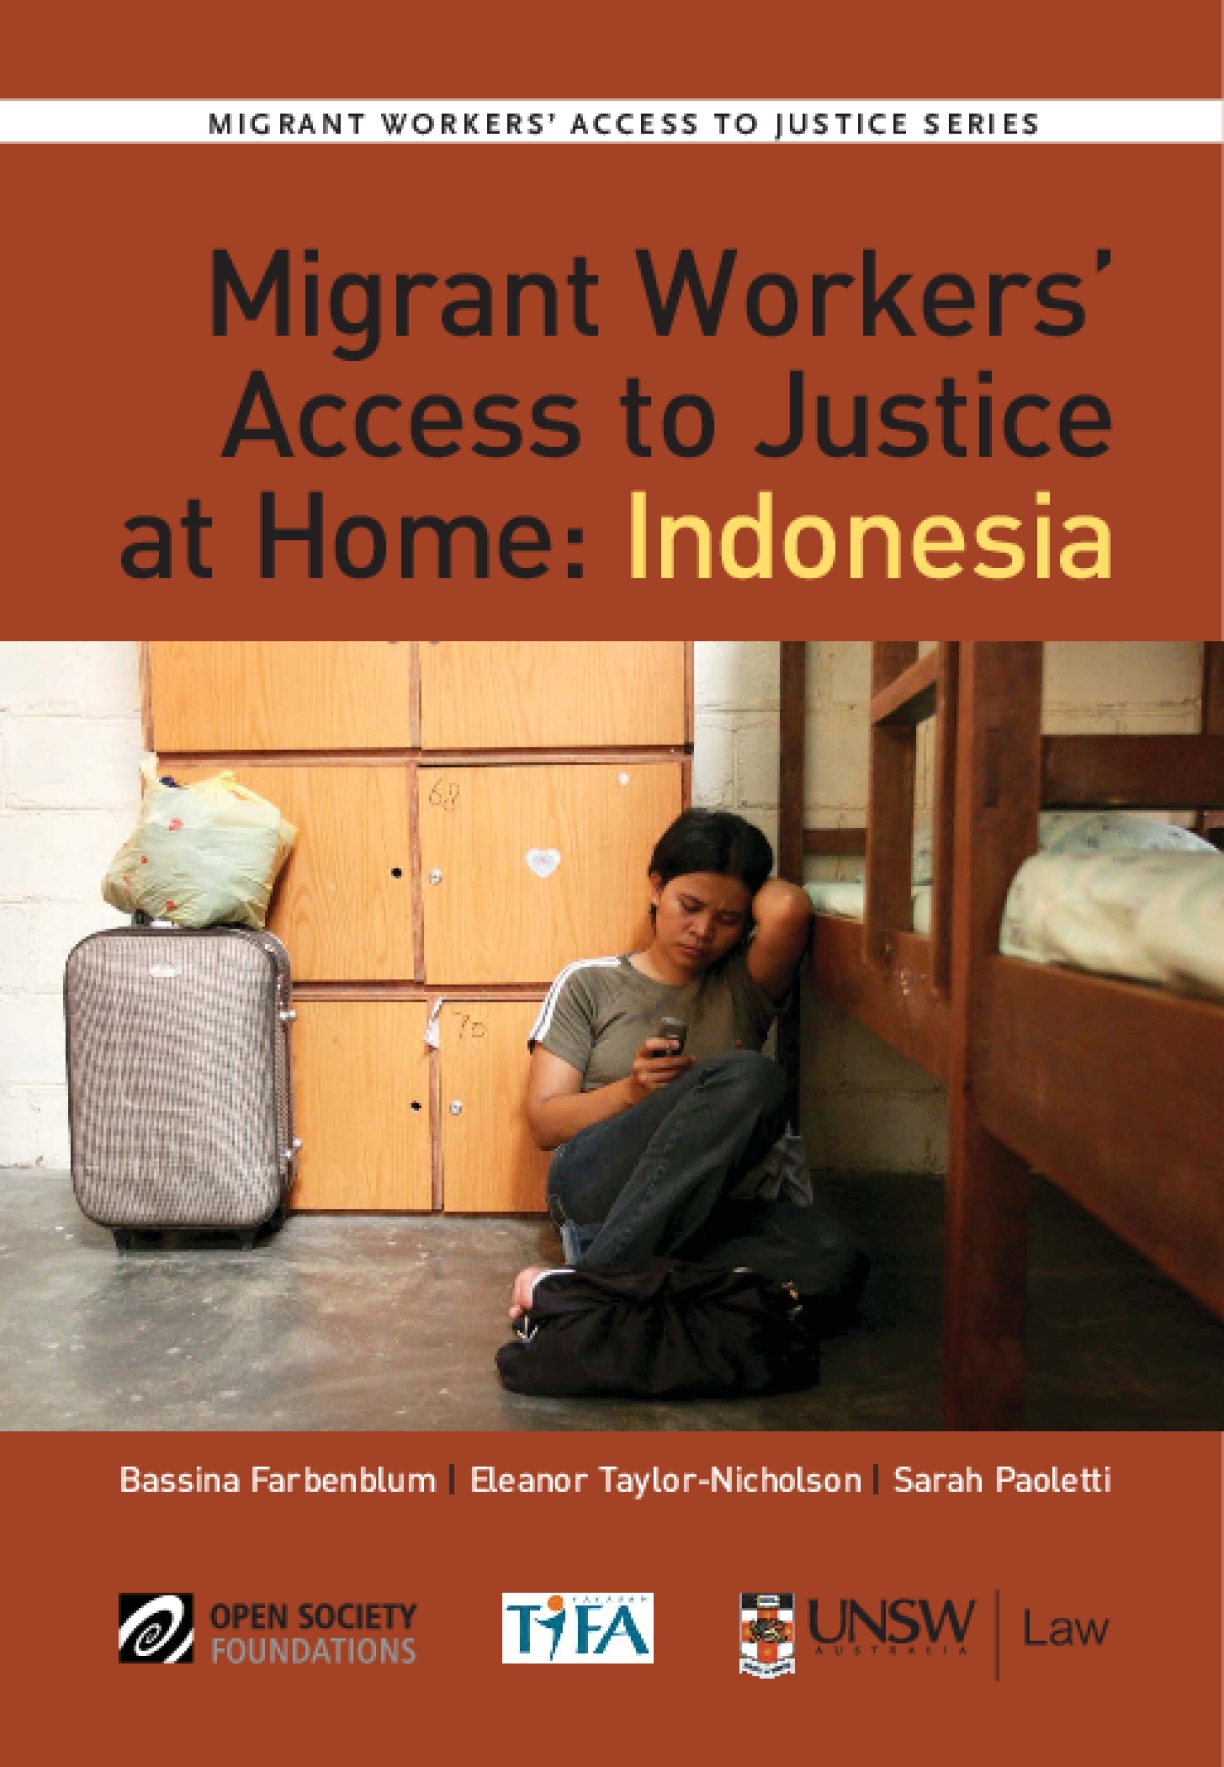 Migrant Workers' Access to Justice at Home: Indonesia